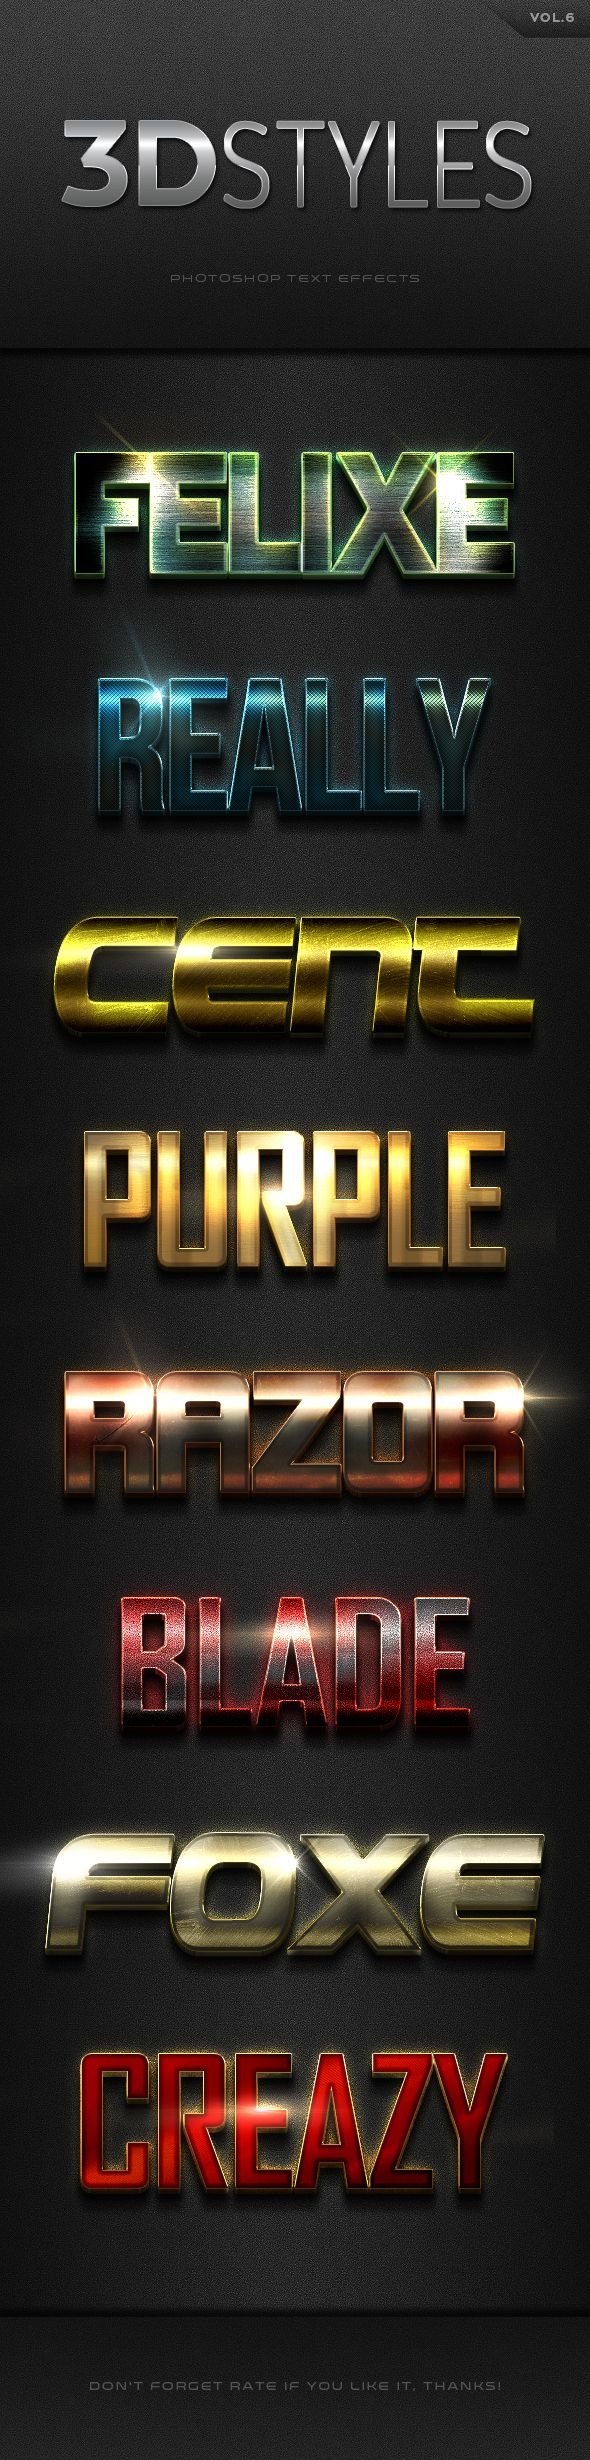 3D Photoshop Text Effects. Download here: http://graphicriver.net/item/3d-photoshop-text-effects-vol6/16594579?ref=ksioks